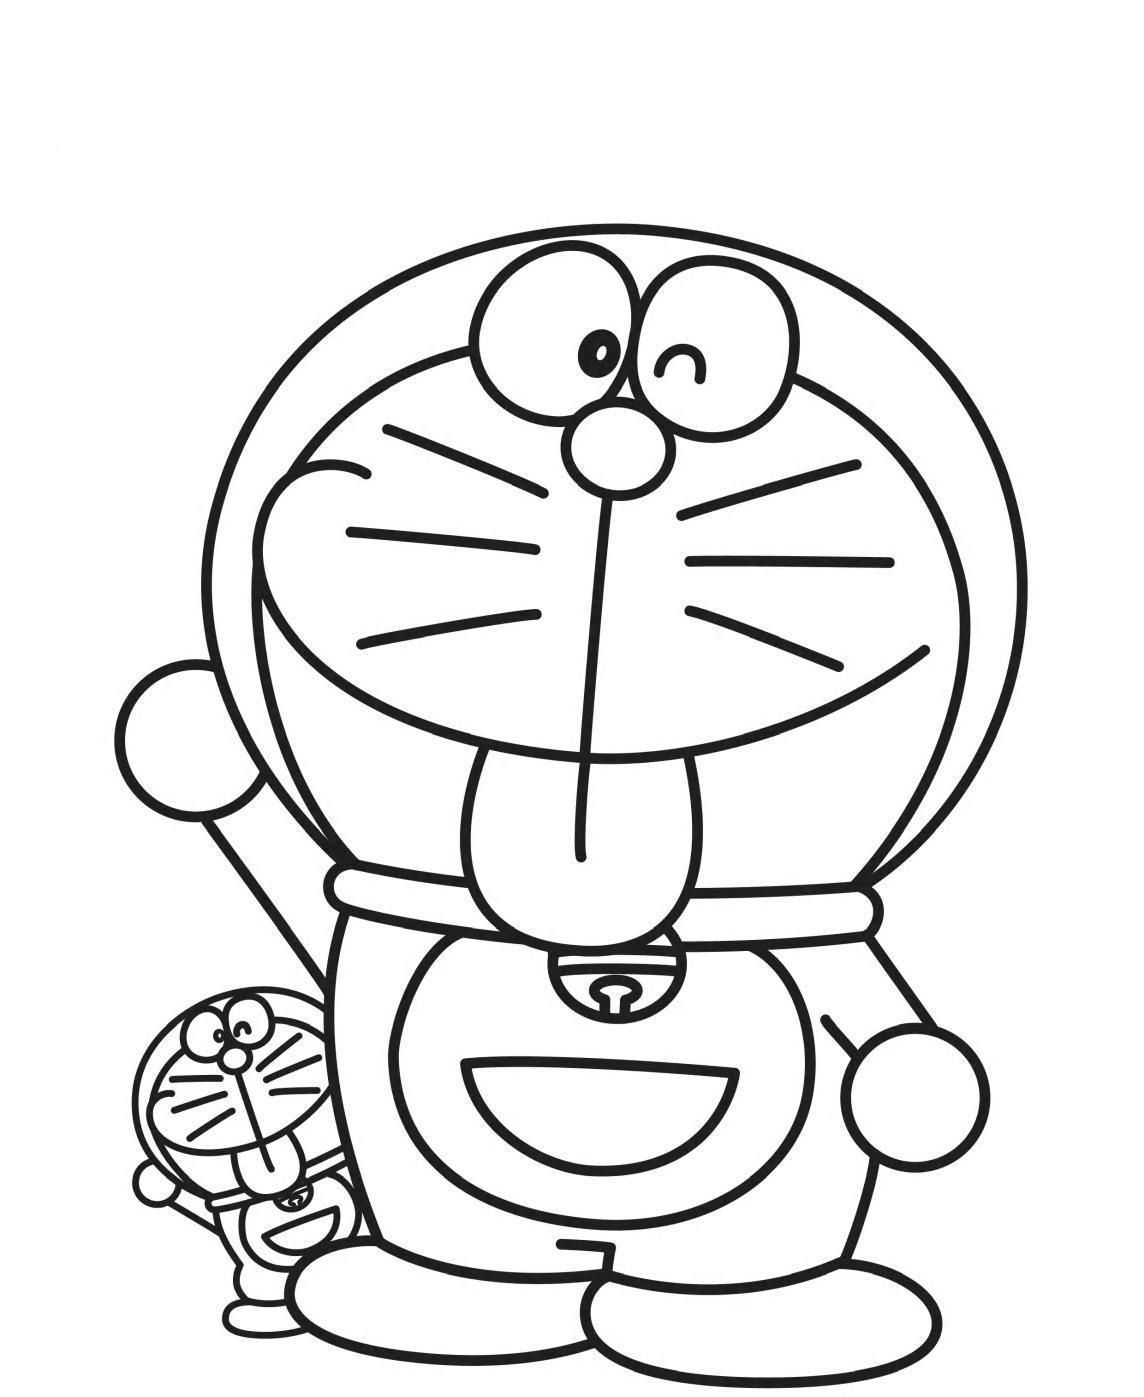 Doraemon Coloring Pages Best Coloring Pages For Kids Doraemon Cartoon Doraemon Cartoon Coloring Pages